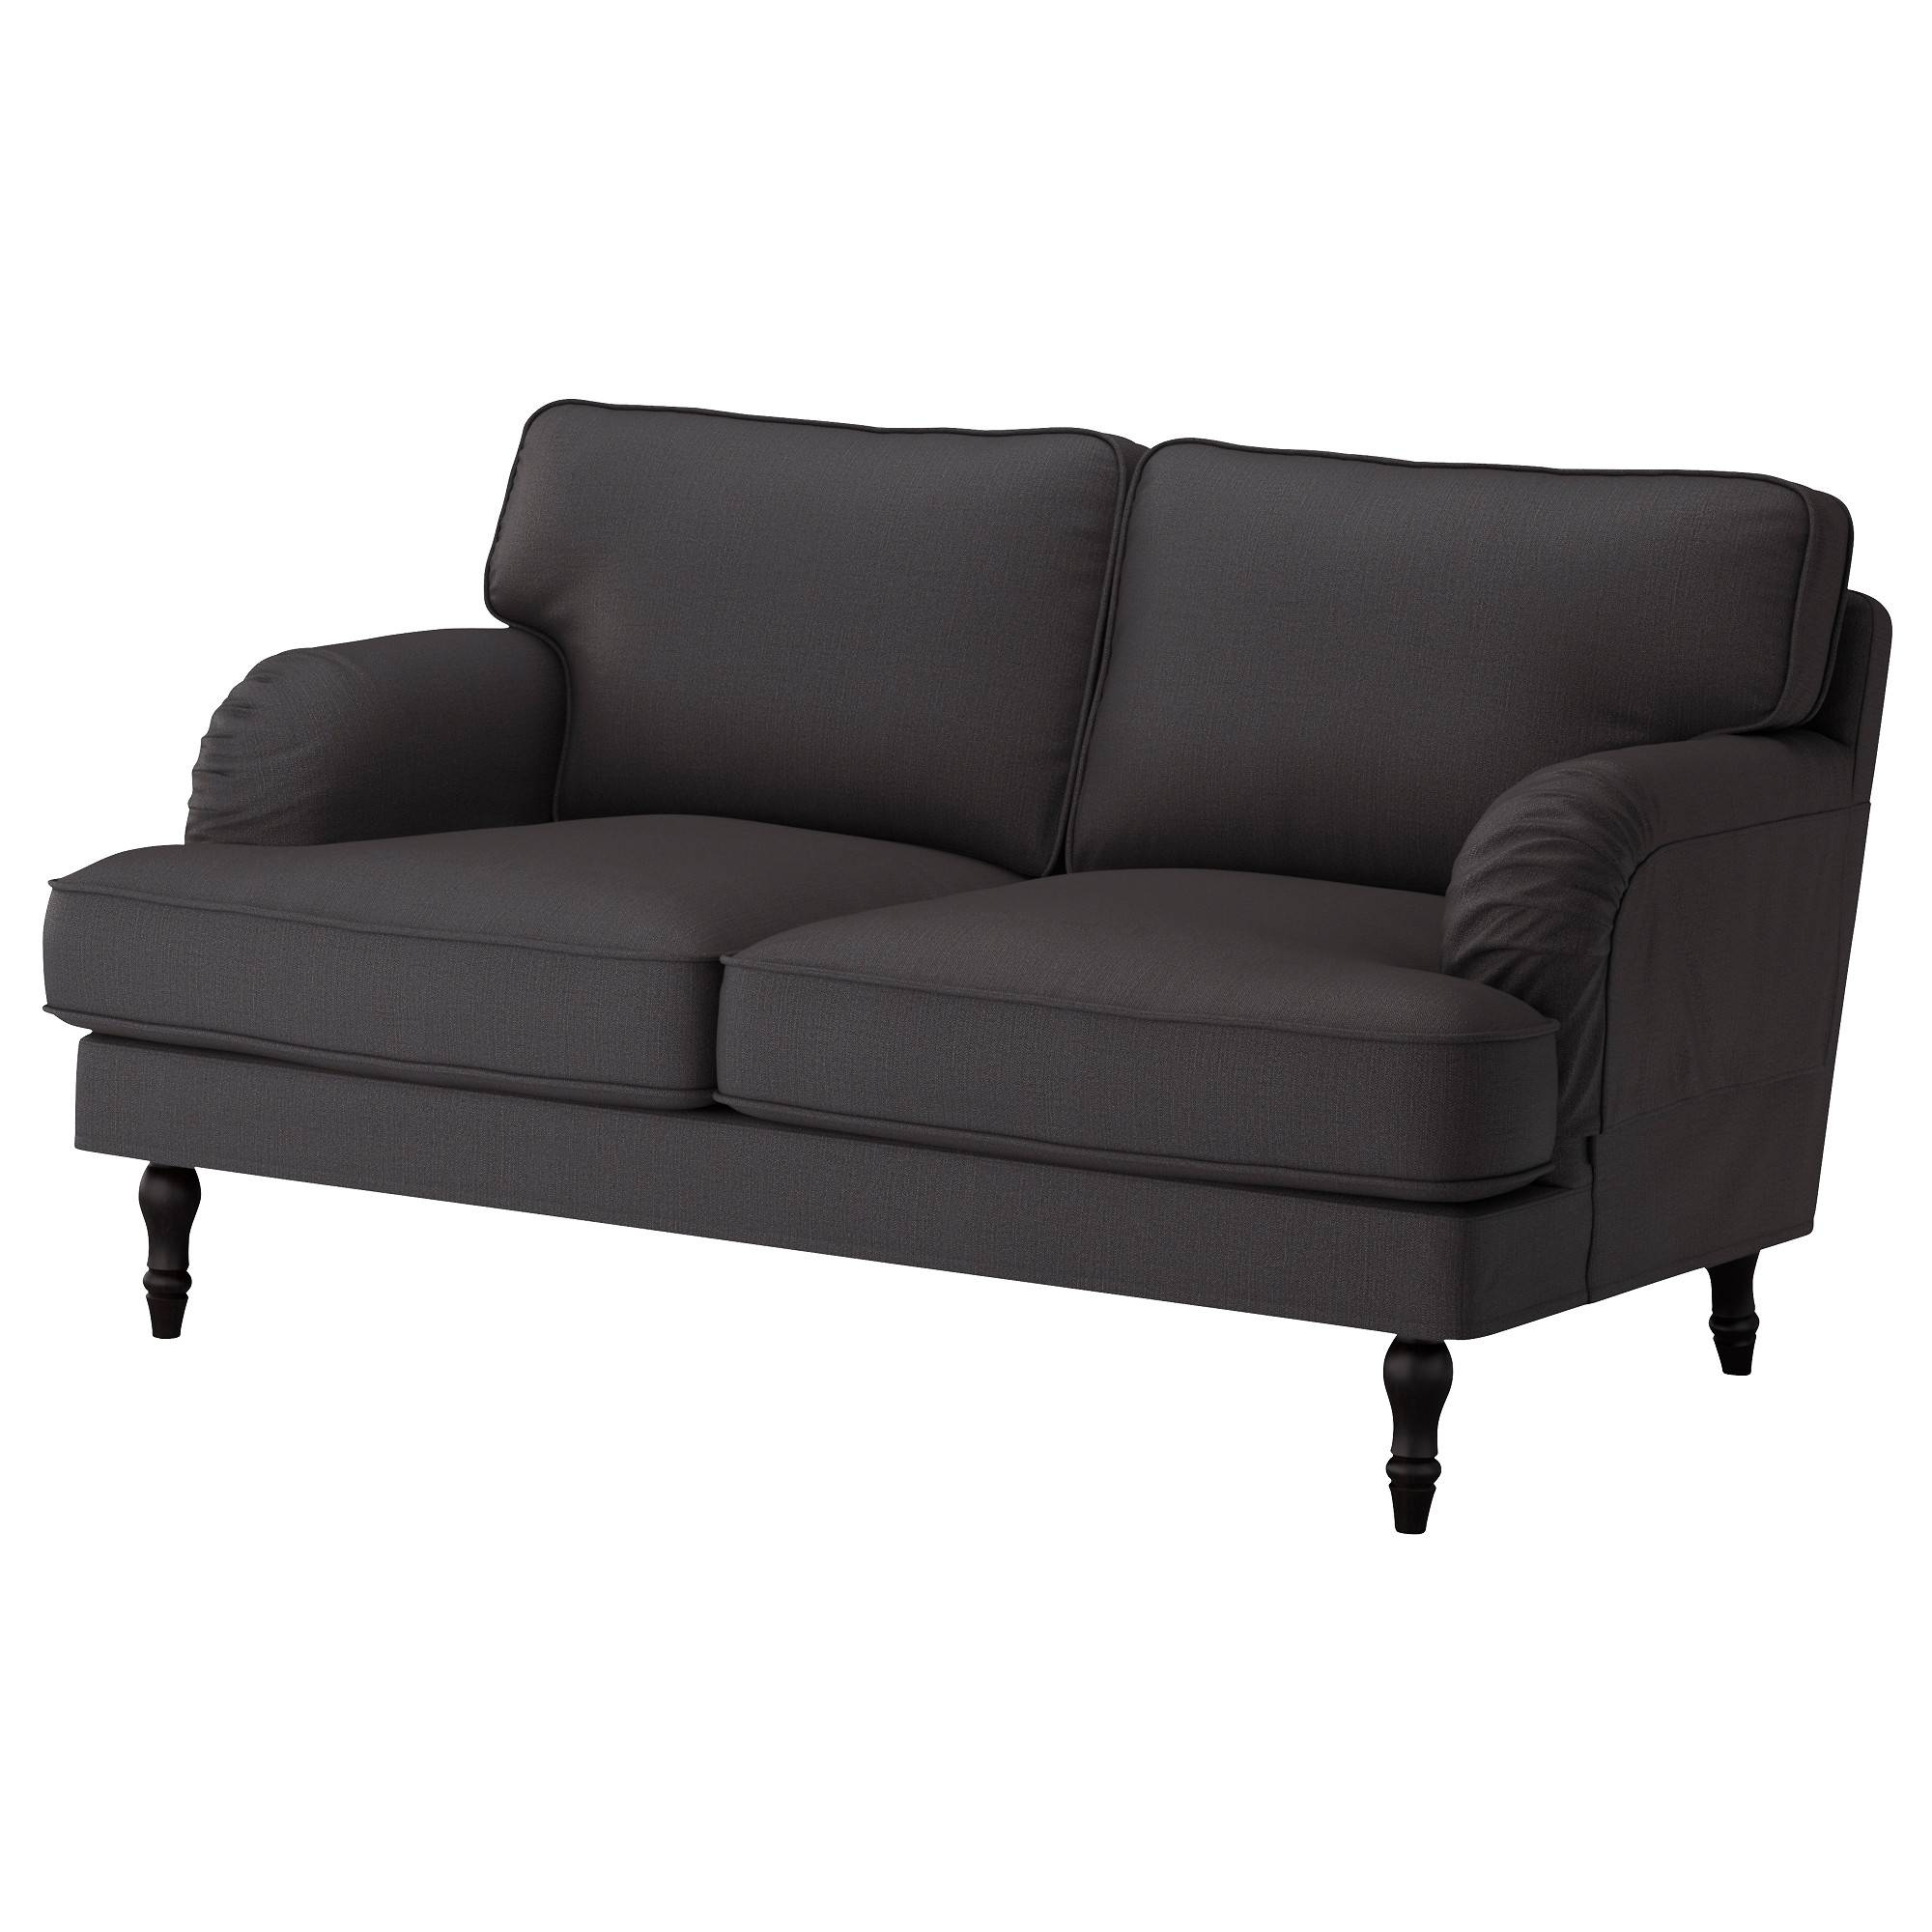 Stocksund Cover Two-Seat Sofa Nolhaga Dark Grey - Ikea regarding Ikea Two Seater Sofas (Image 24 of 30)